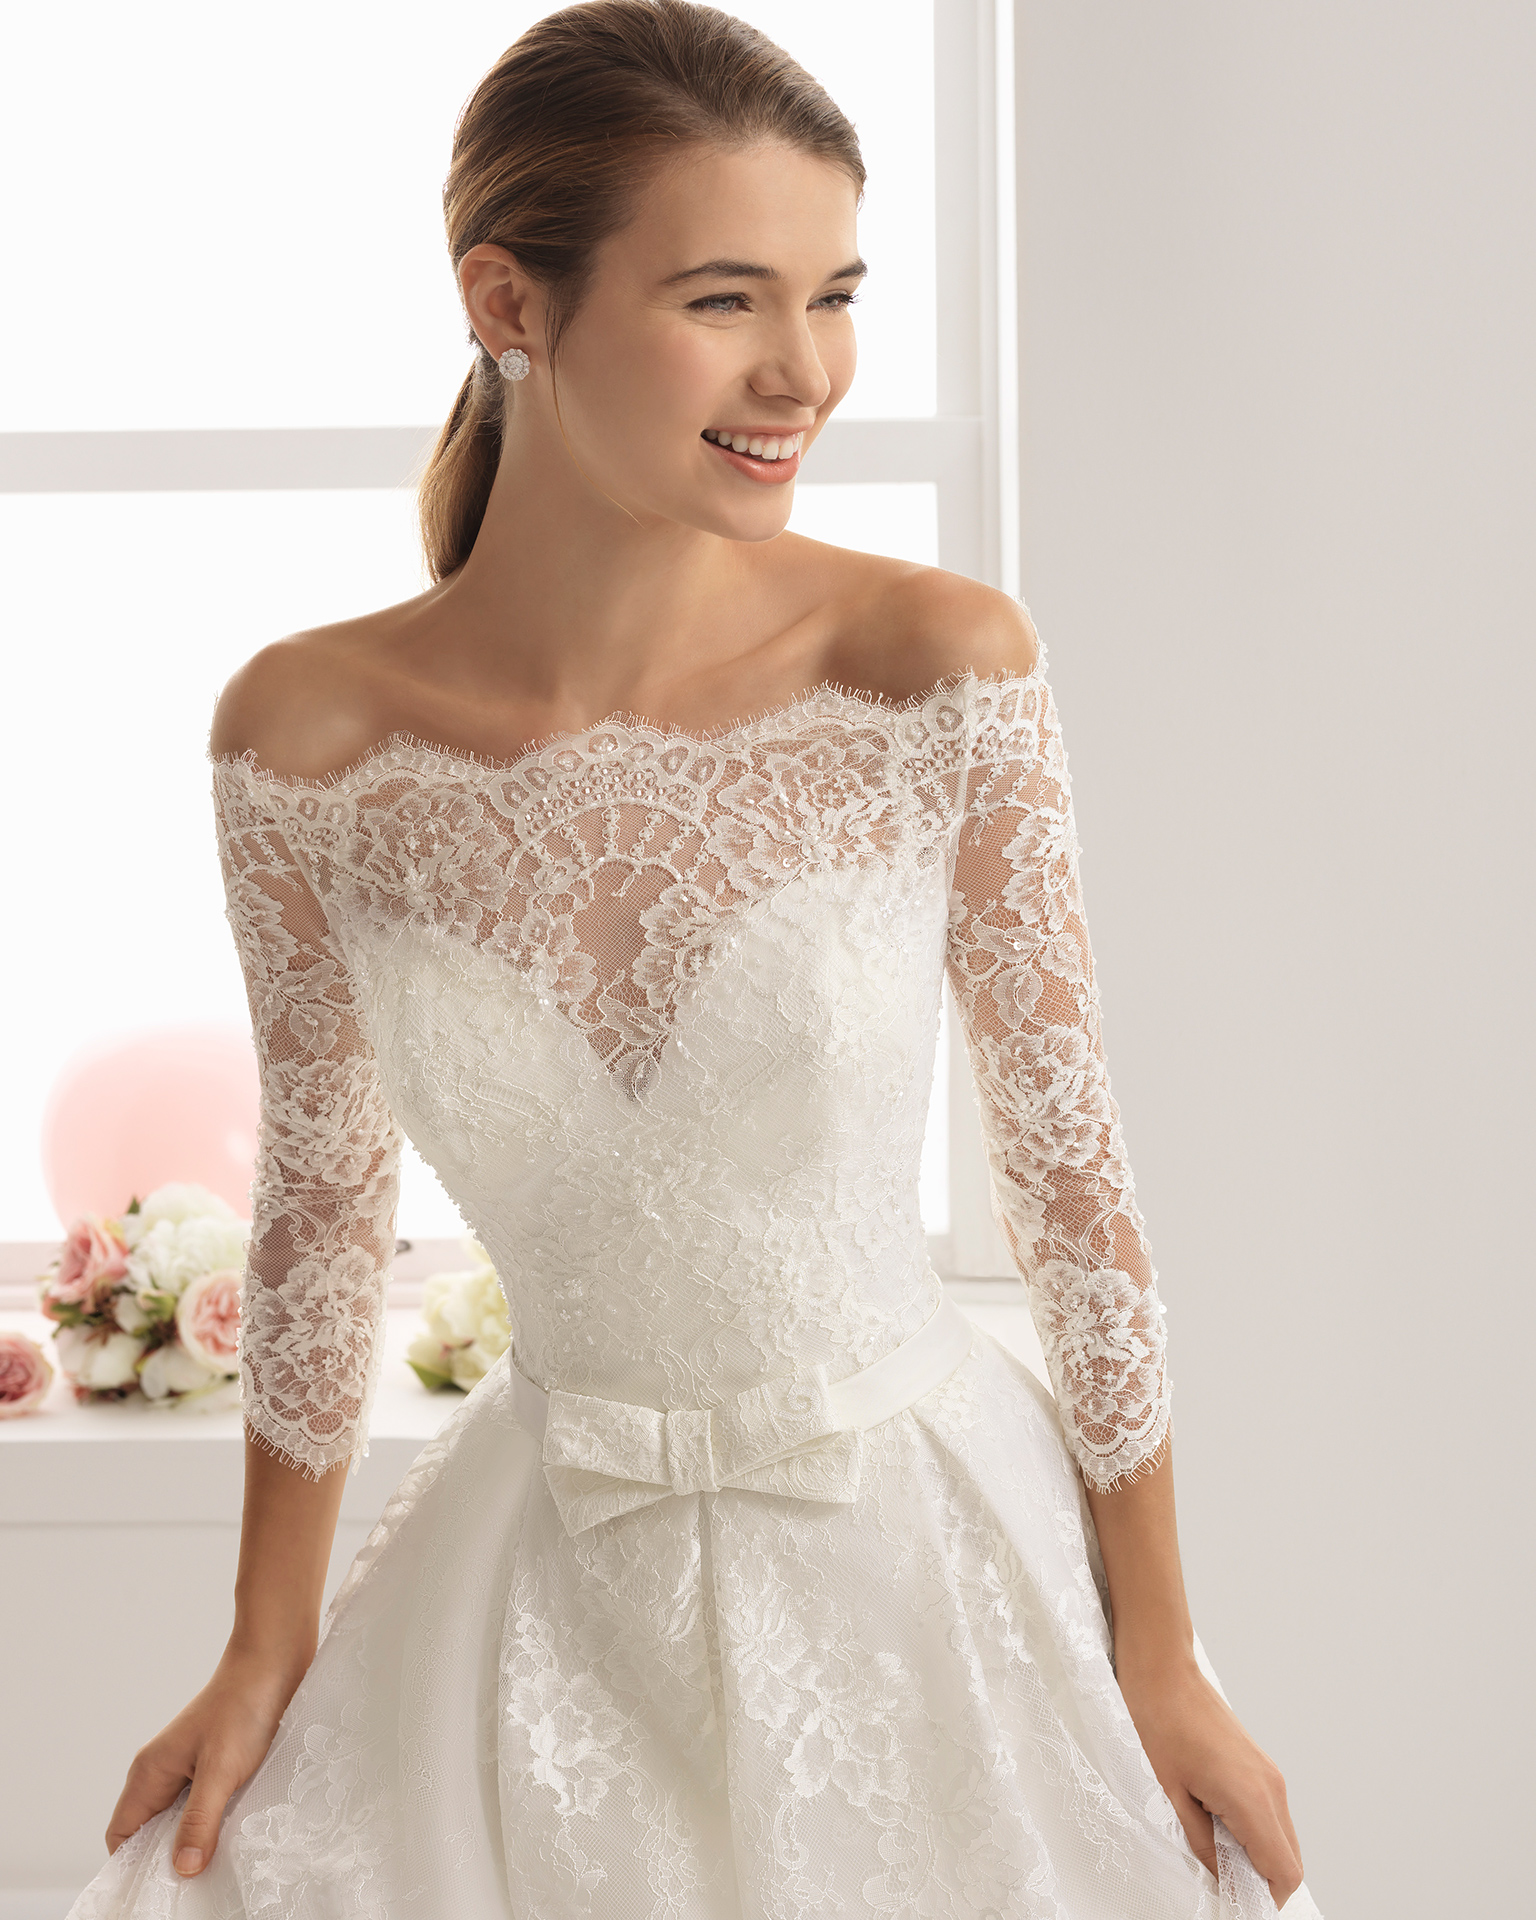 Romantic-style beaded lace wedding dress with three-quarter sleeves and bateau neckline, in ivory, and in rose with bow at waist.